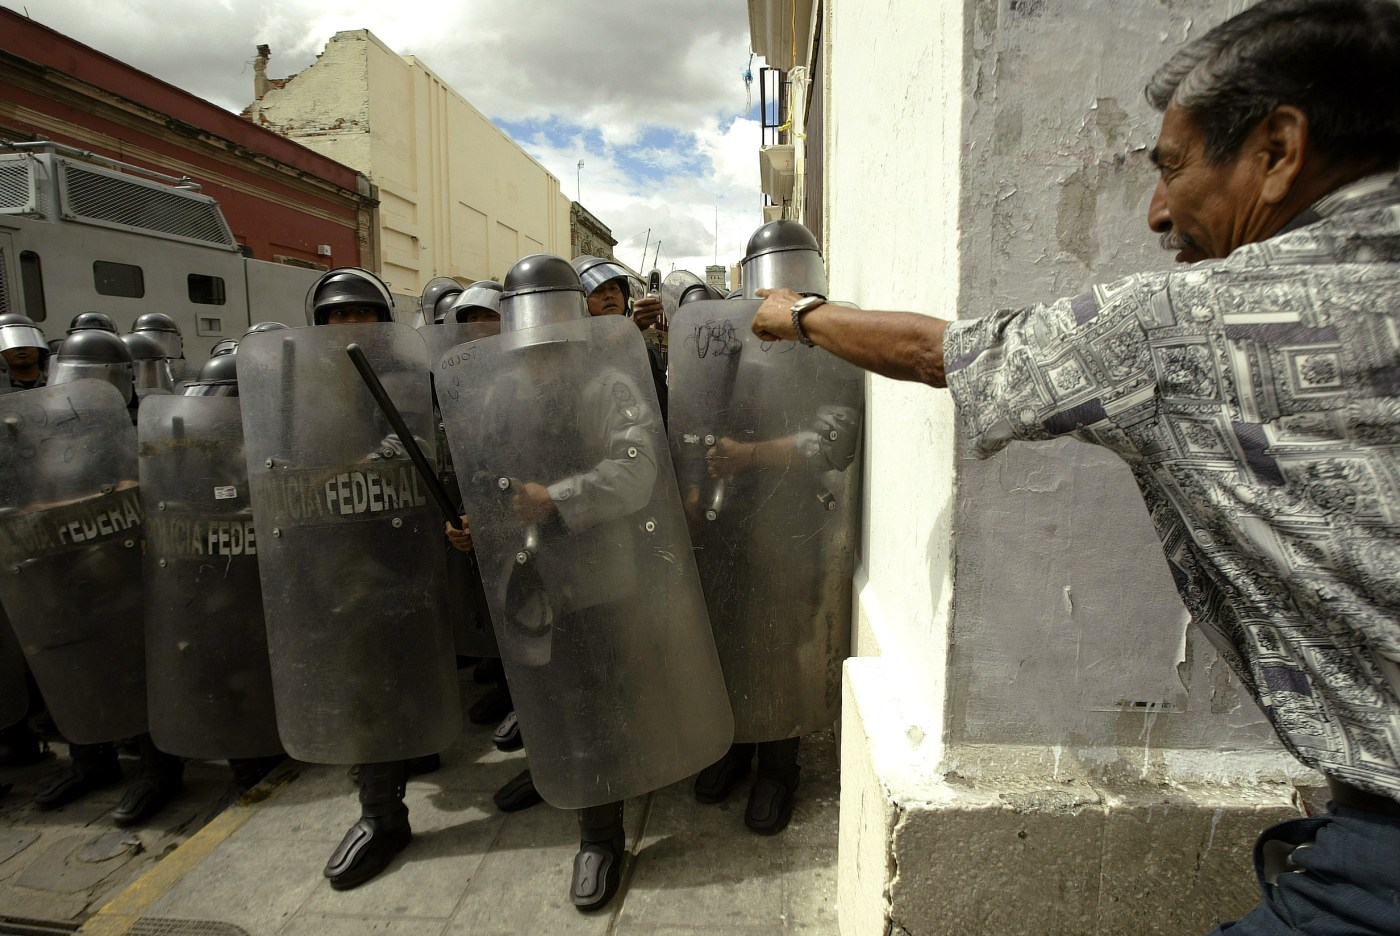 A protester confronts Mexican federal police officers as they guard Oaxaca's Zocalo Saturday, Nov. 4, 2006, in Mexico. Protests began in May with a strike by teachers demanding better pay and work conditions in one of Mexico's poorest states. When police violently broke up a demonstration in June, protesters expanded their demands to include Gov. Ulises Ruiz's resignation and were joined by leftists, Indian groups, students and others. (AP Photo/Guillermo Arias)